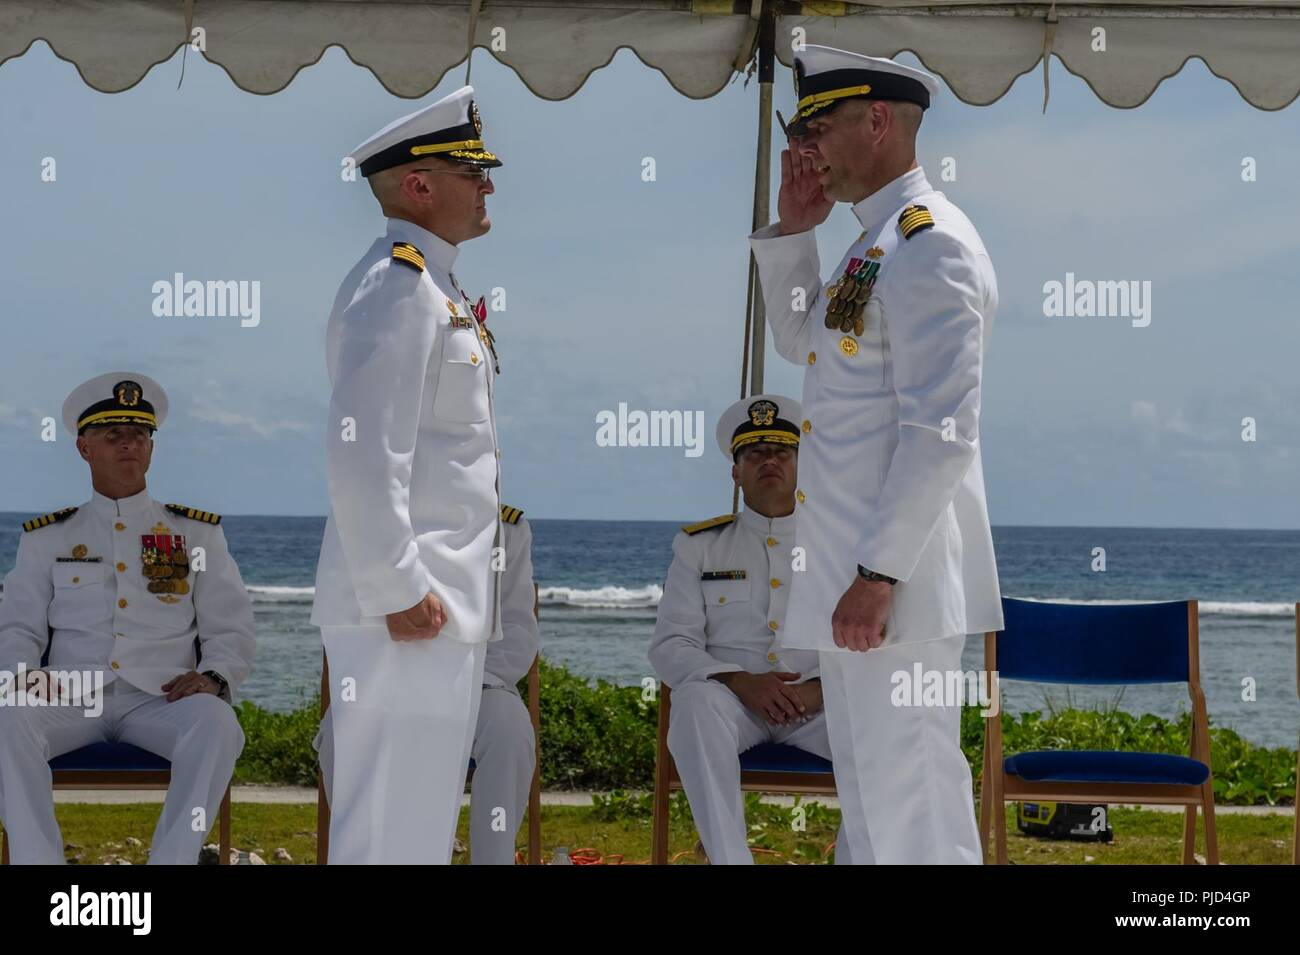 ASAN BEACH, Guam (July 19, 2018) Capt. Steven Stasick (left) relieves Capt. Jeffrey Kilian as commodore of the 30th Naval Construction Regiment during a change of command ceremony at the War in the Pacific National Historical Park Asan Beach Unit. Stock Photo